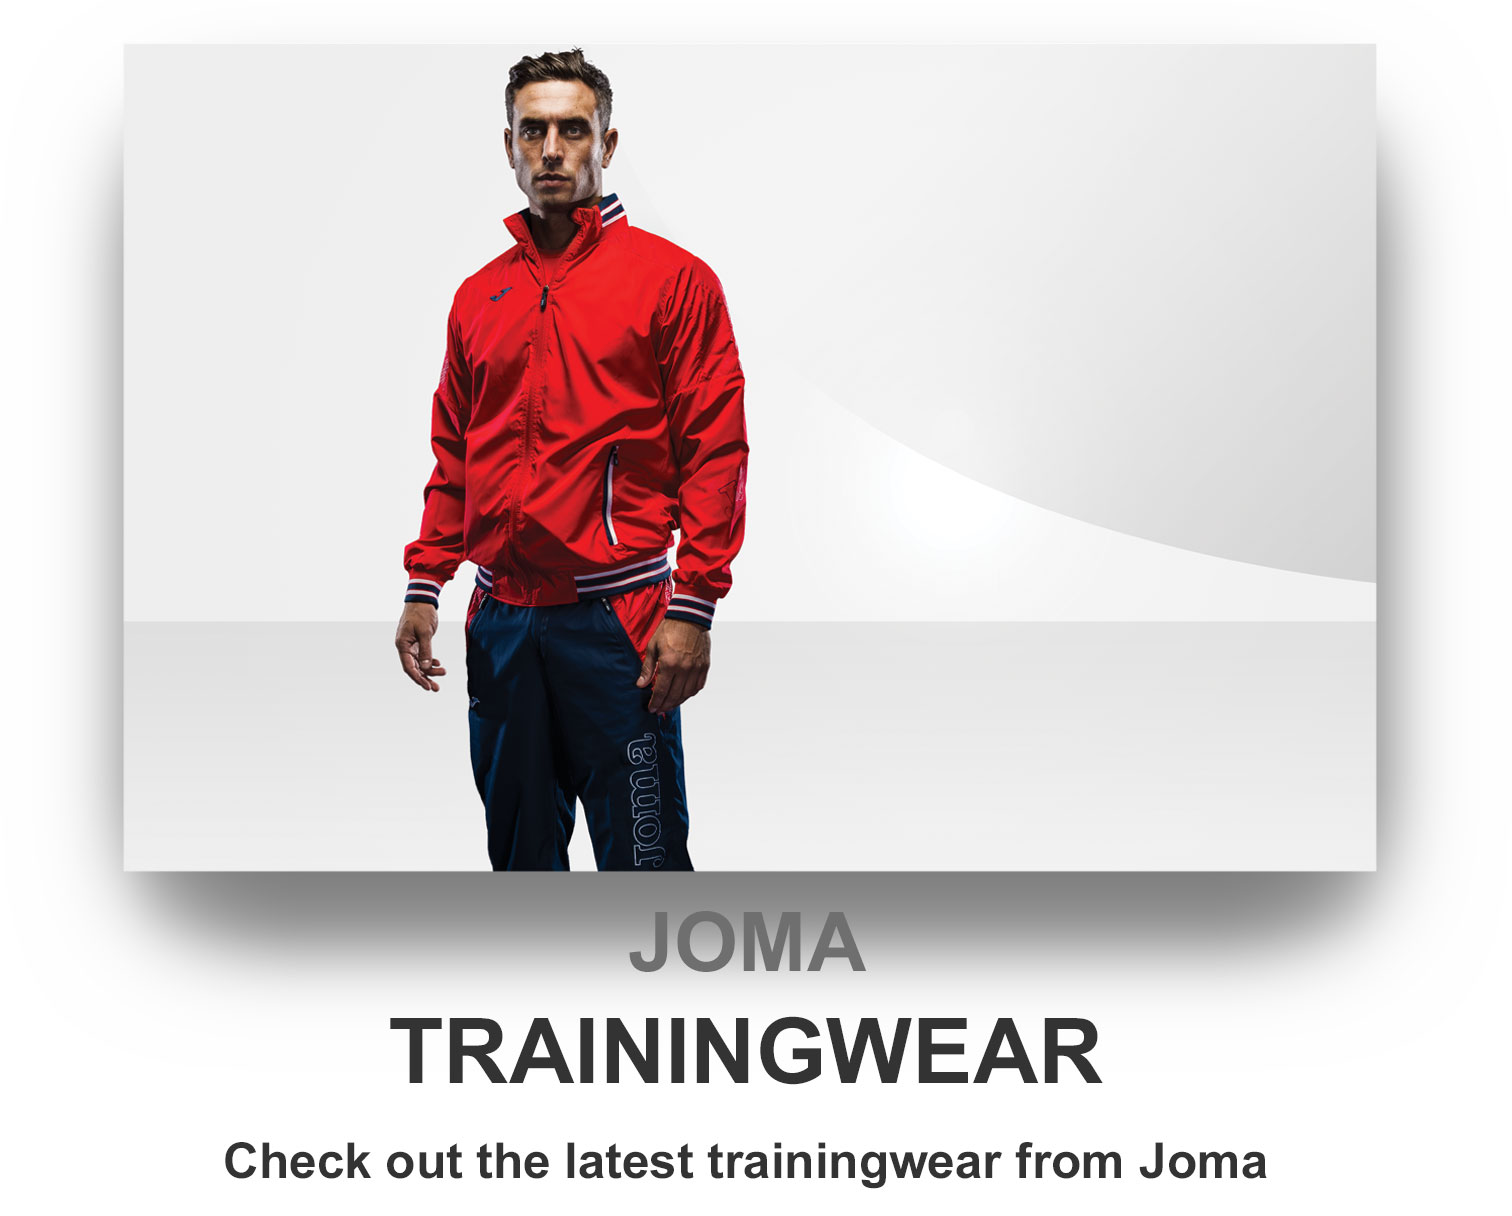 trainingwear-joma.jpg